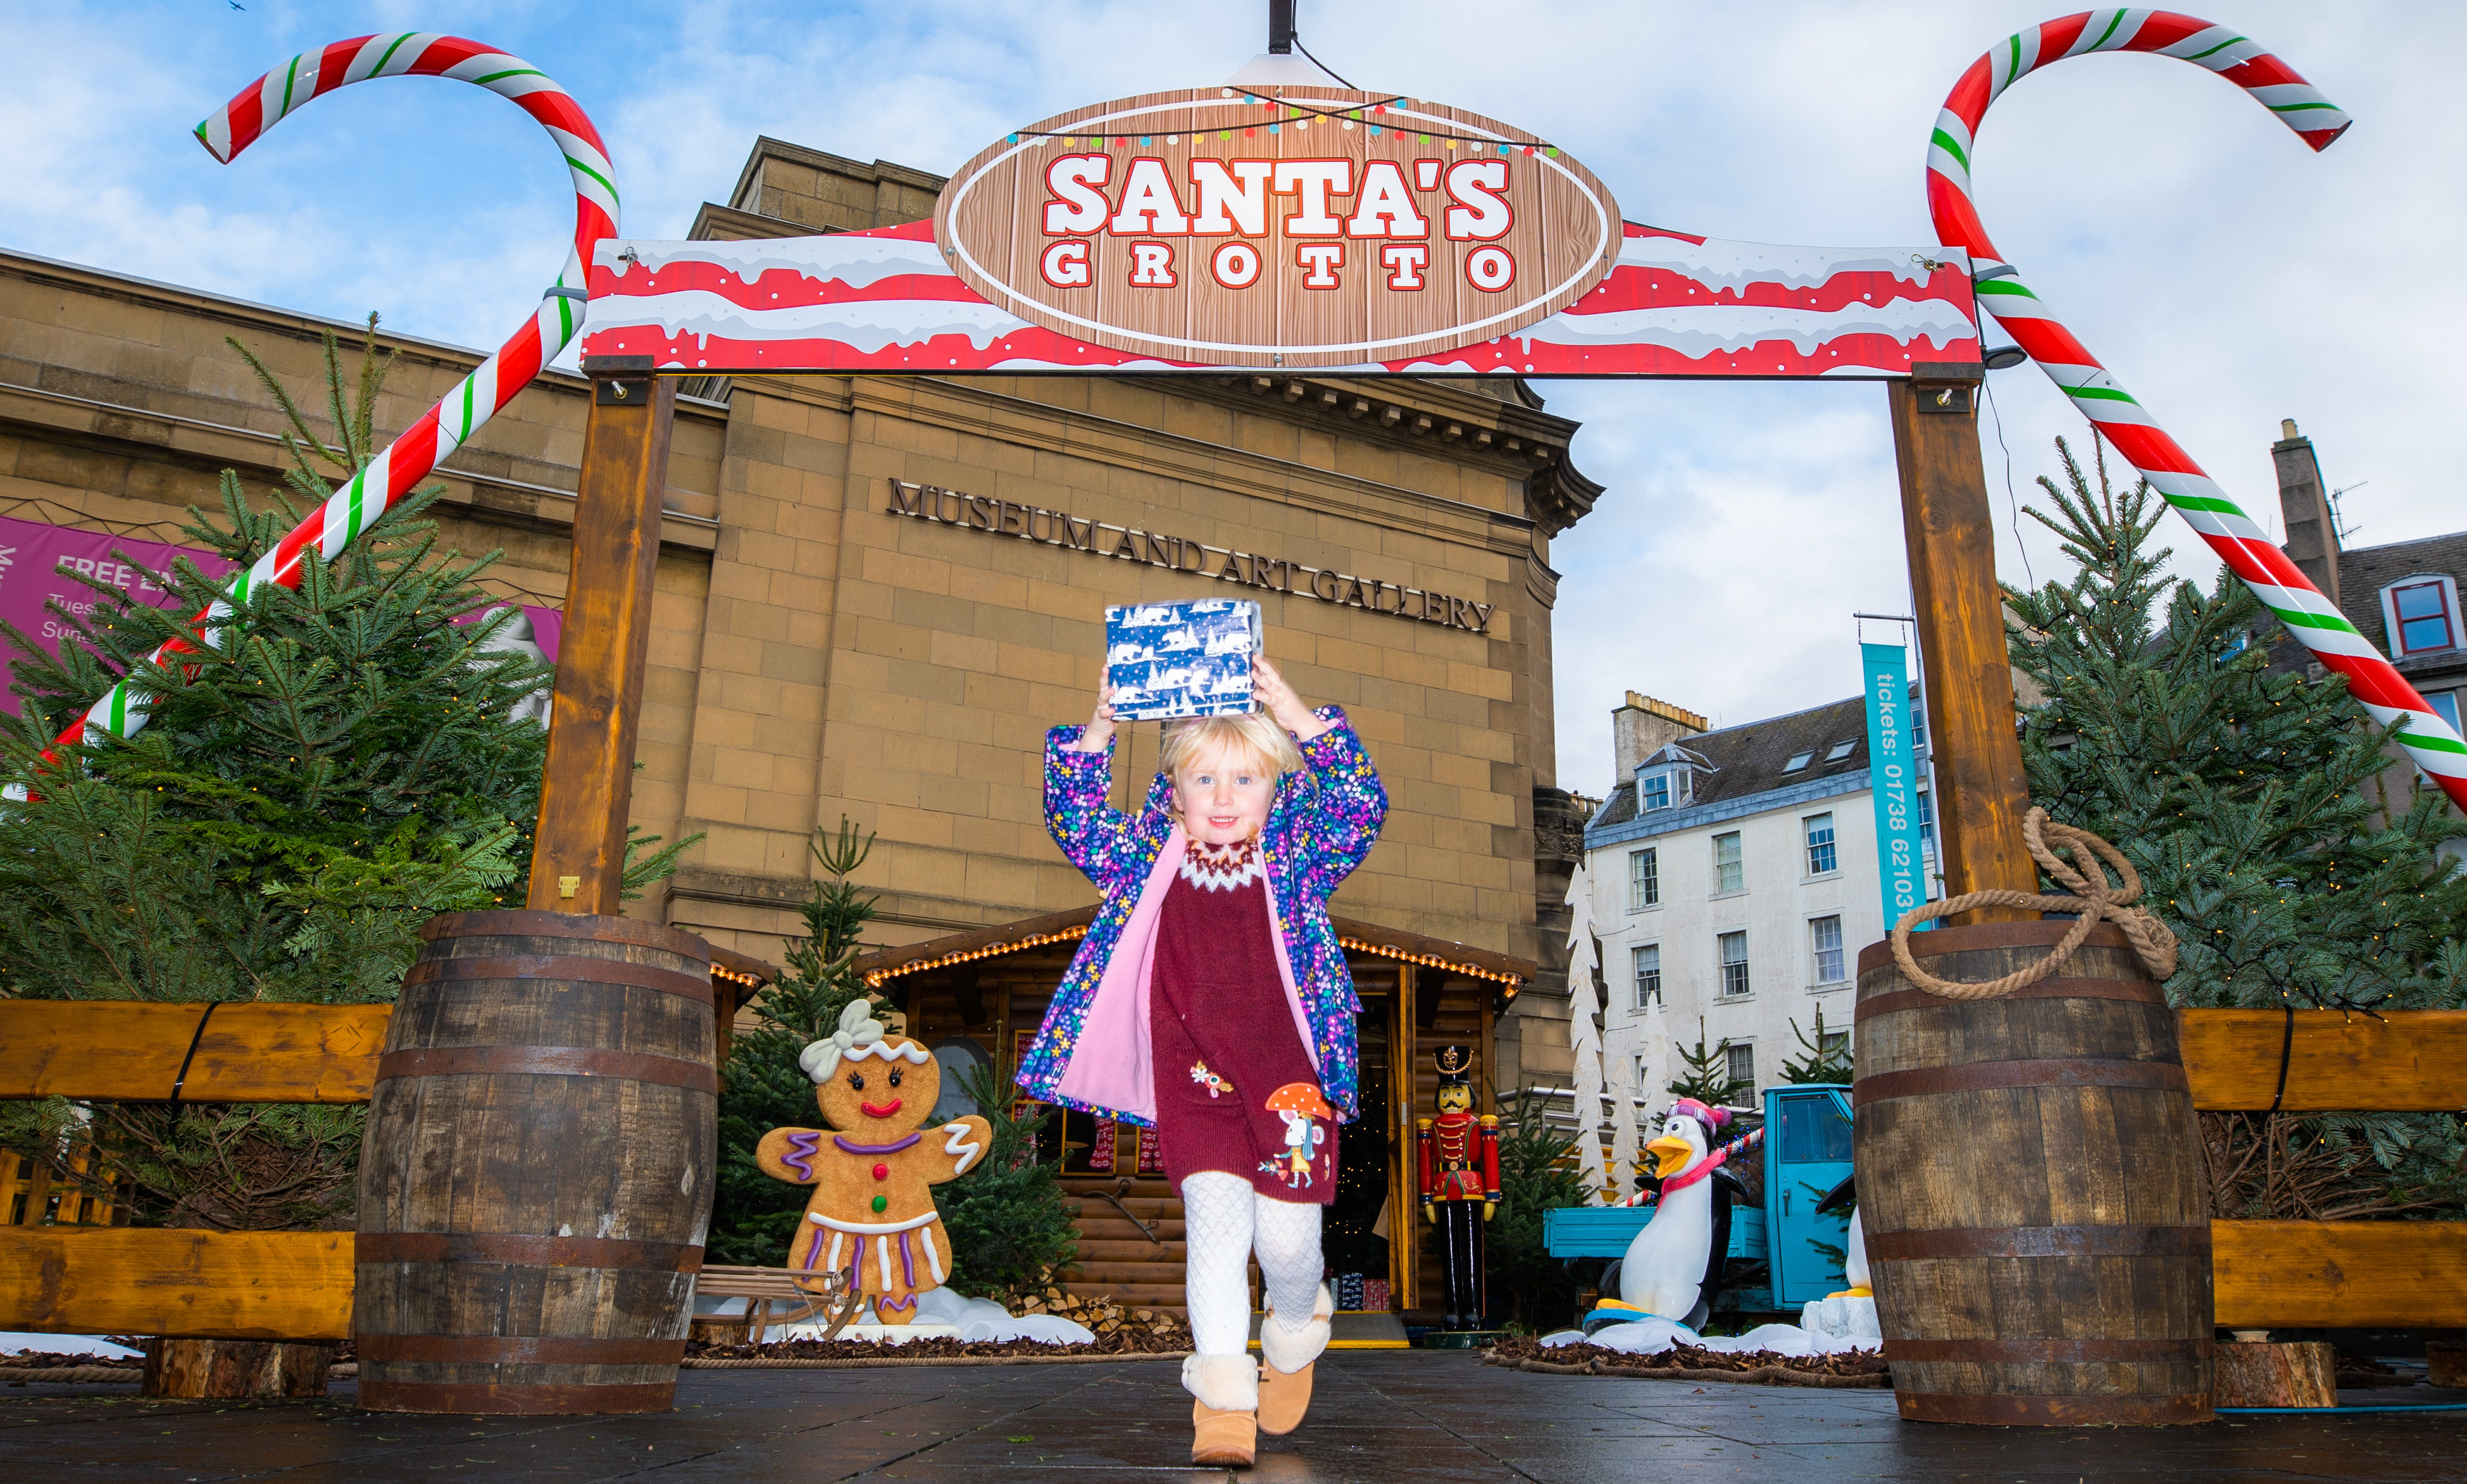 Ruby Hampton (aged 4 from Blairgowrie) managed to take a sneak peak at Santa's Grotto in Perth, and was rewarded for her efforts!